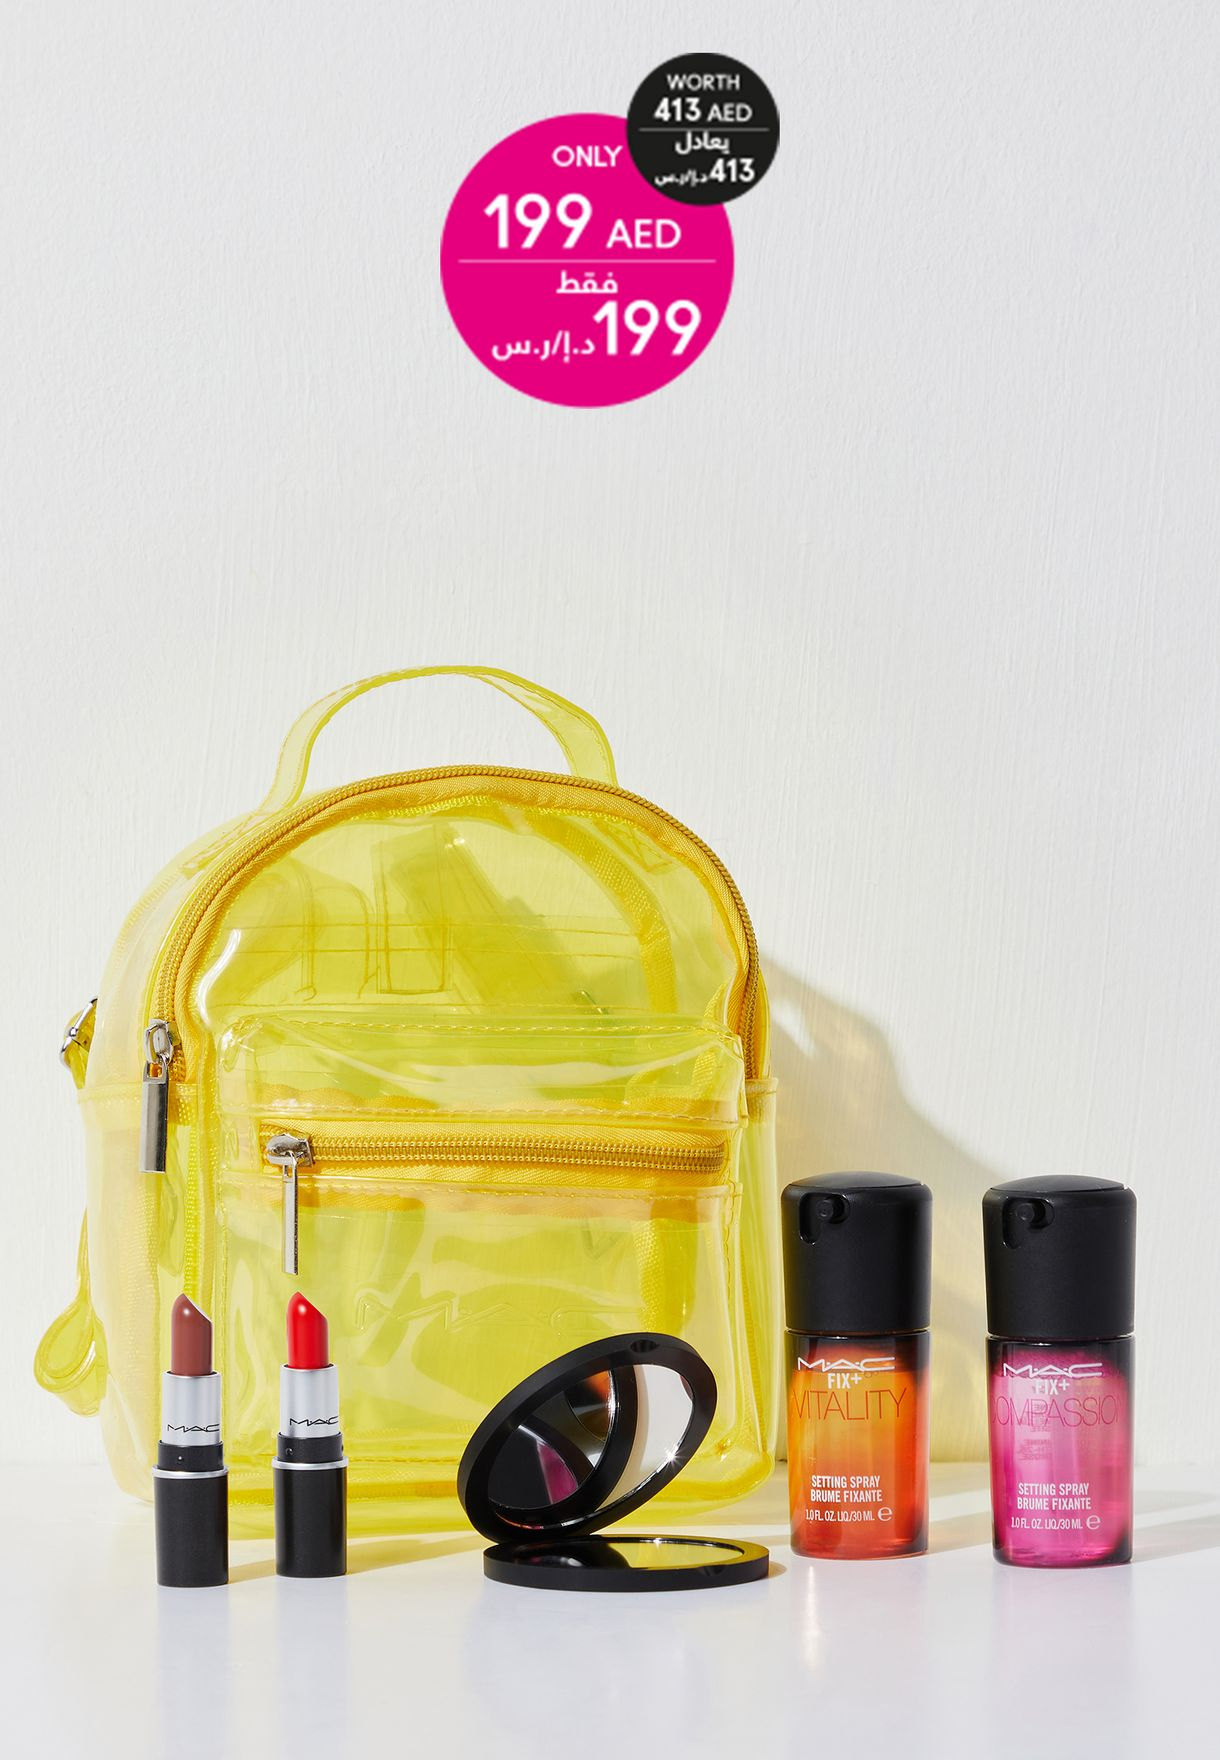 Backpack Essentials Worth 413 aed/sar